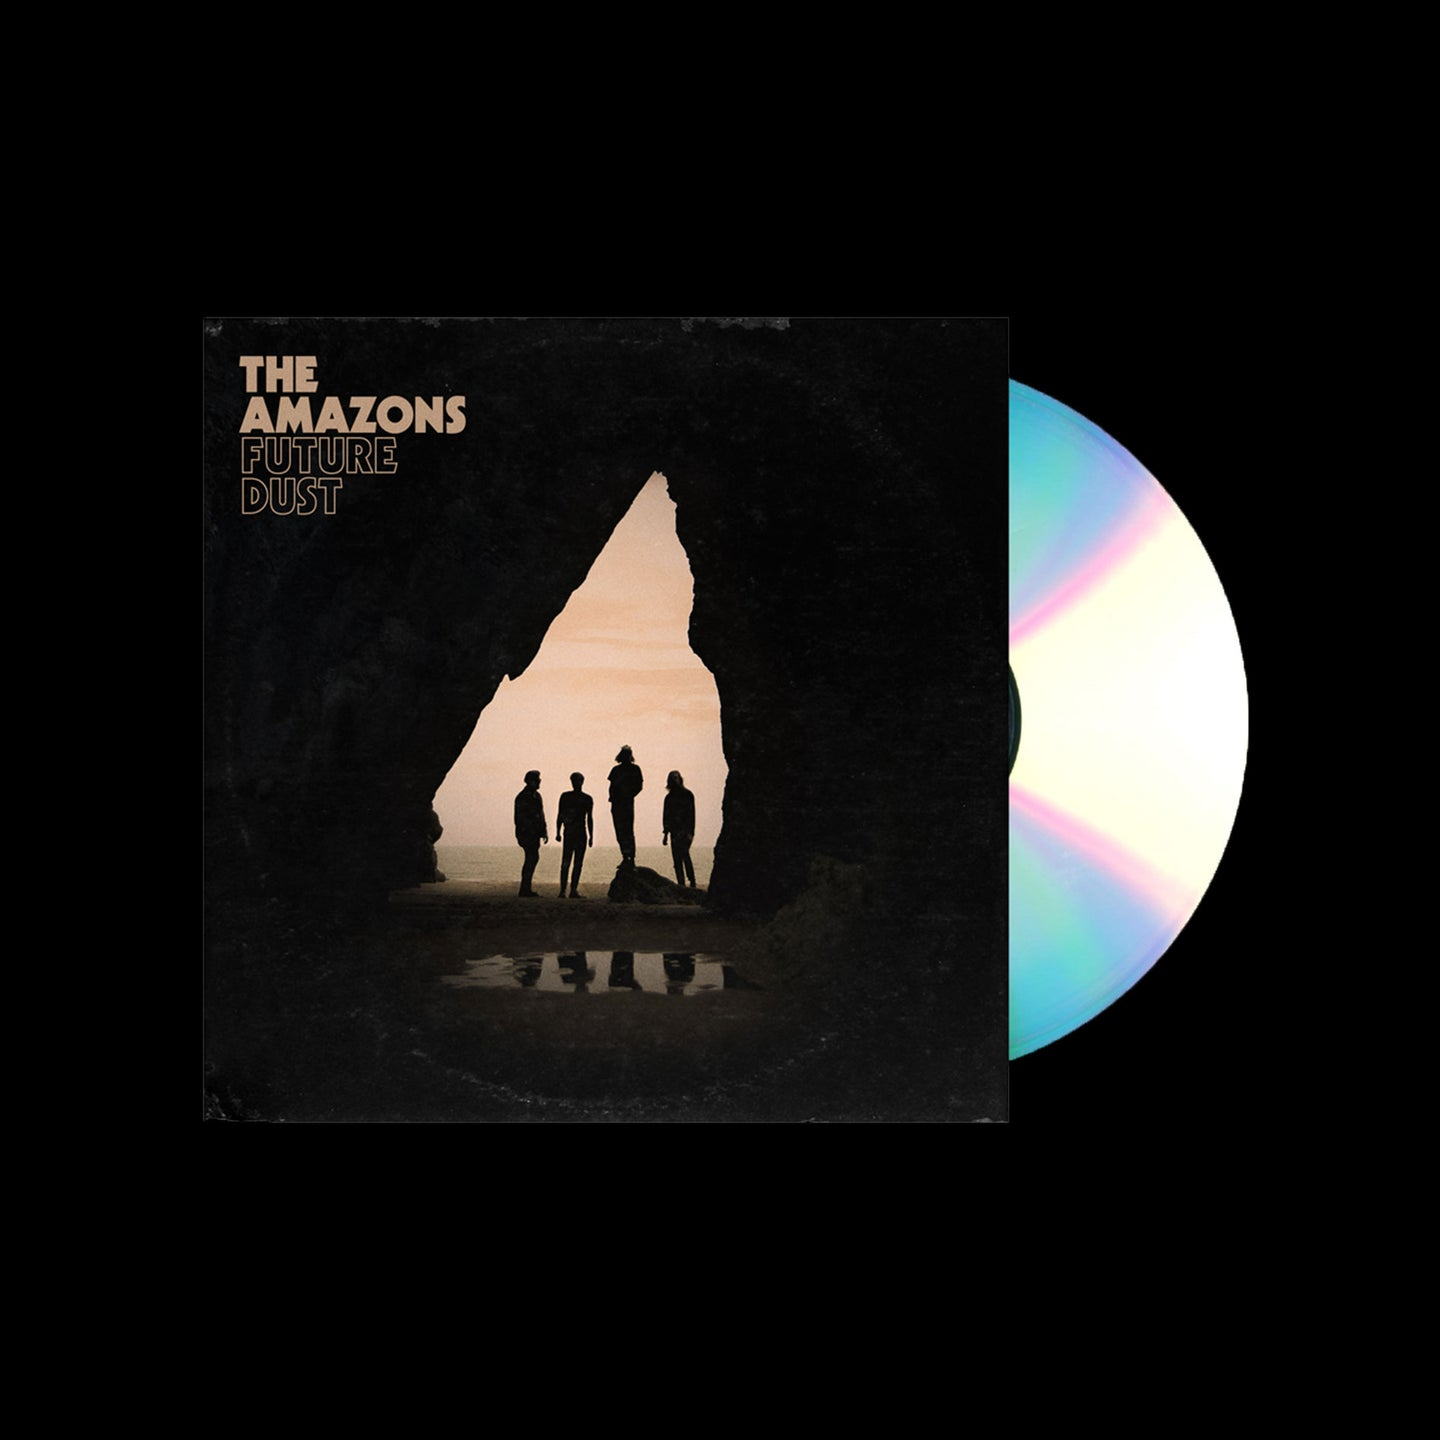 The Amazons Future Dust CD